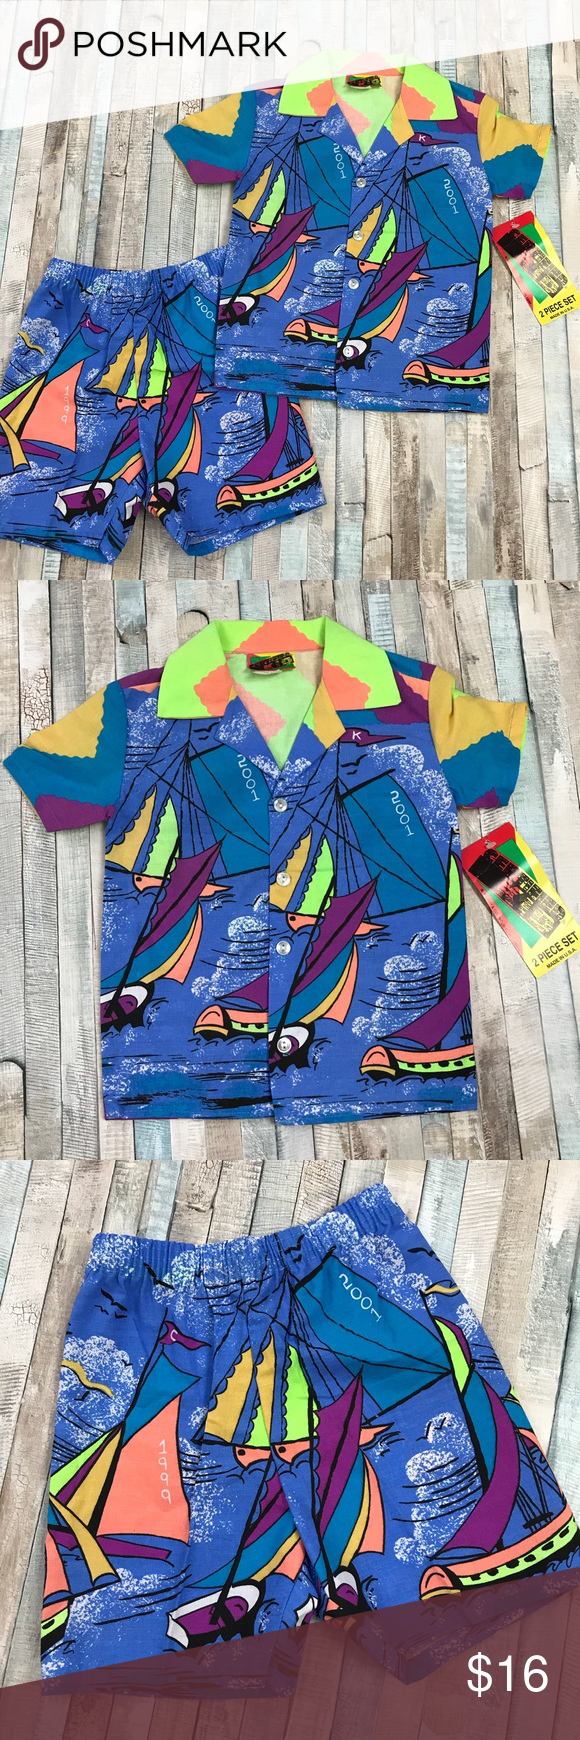 New Funky Retro Sailboat Outfit Neon Beach Shorts Funky